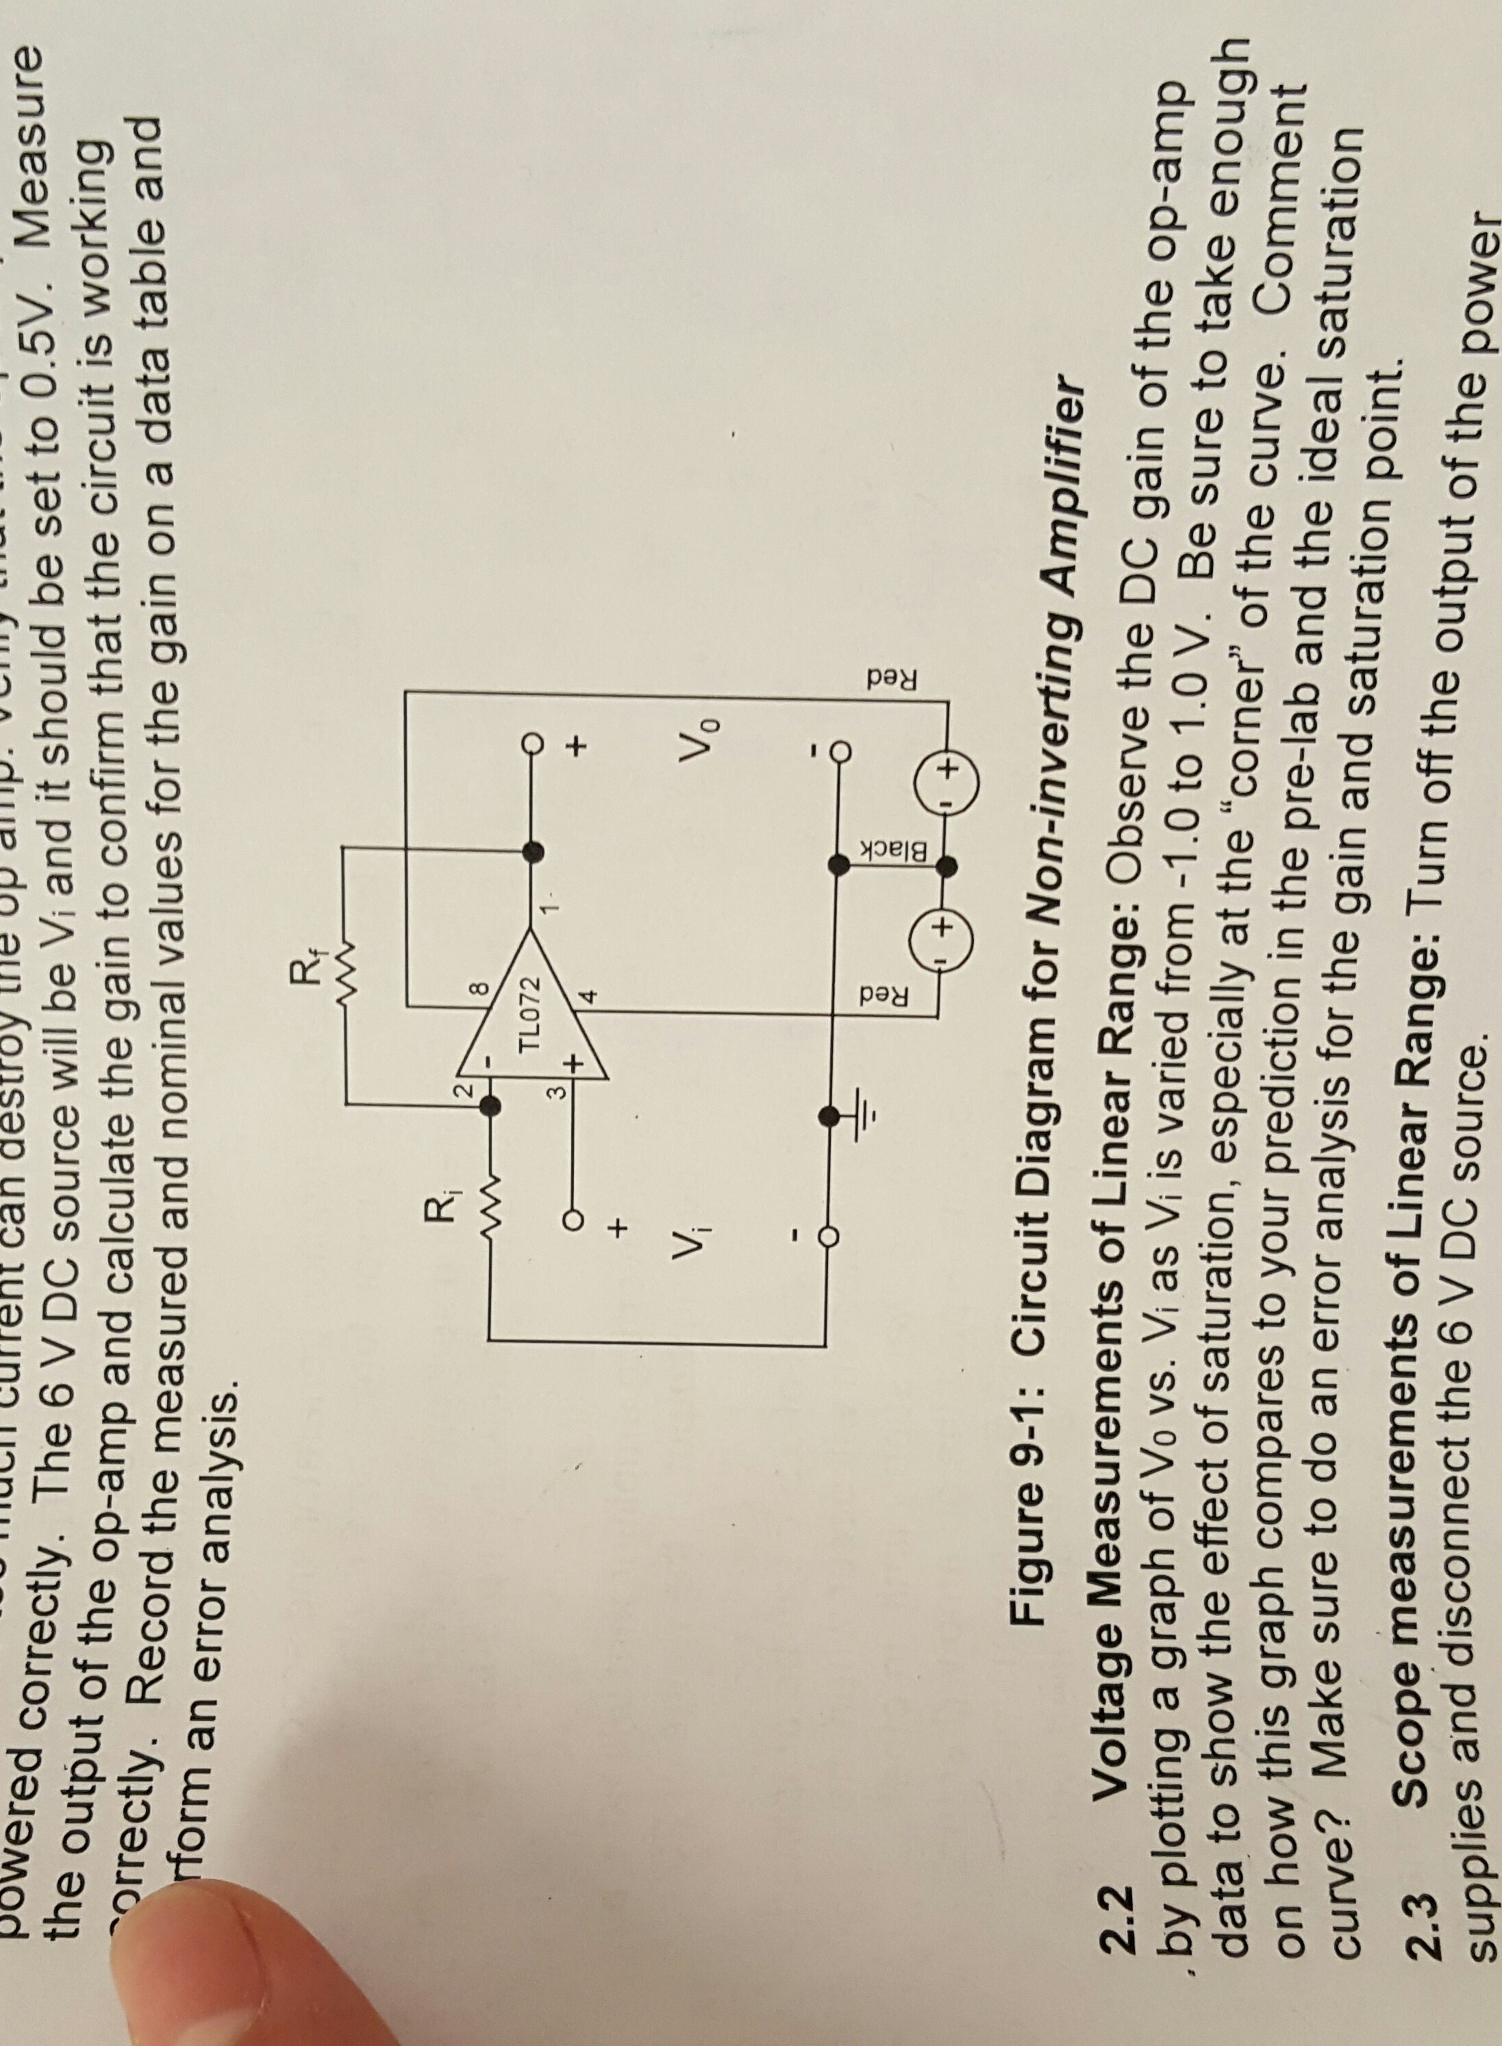 1 Use The Circuit To Design A Non Inverting Ampli Amp Is Noninverting Amplifier